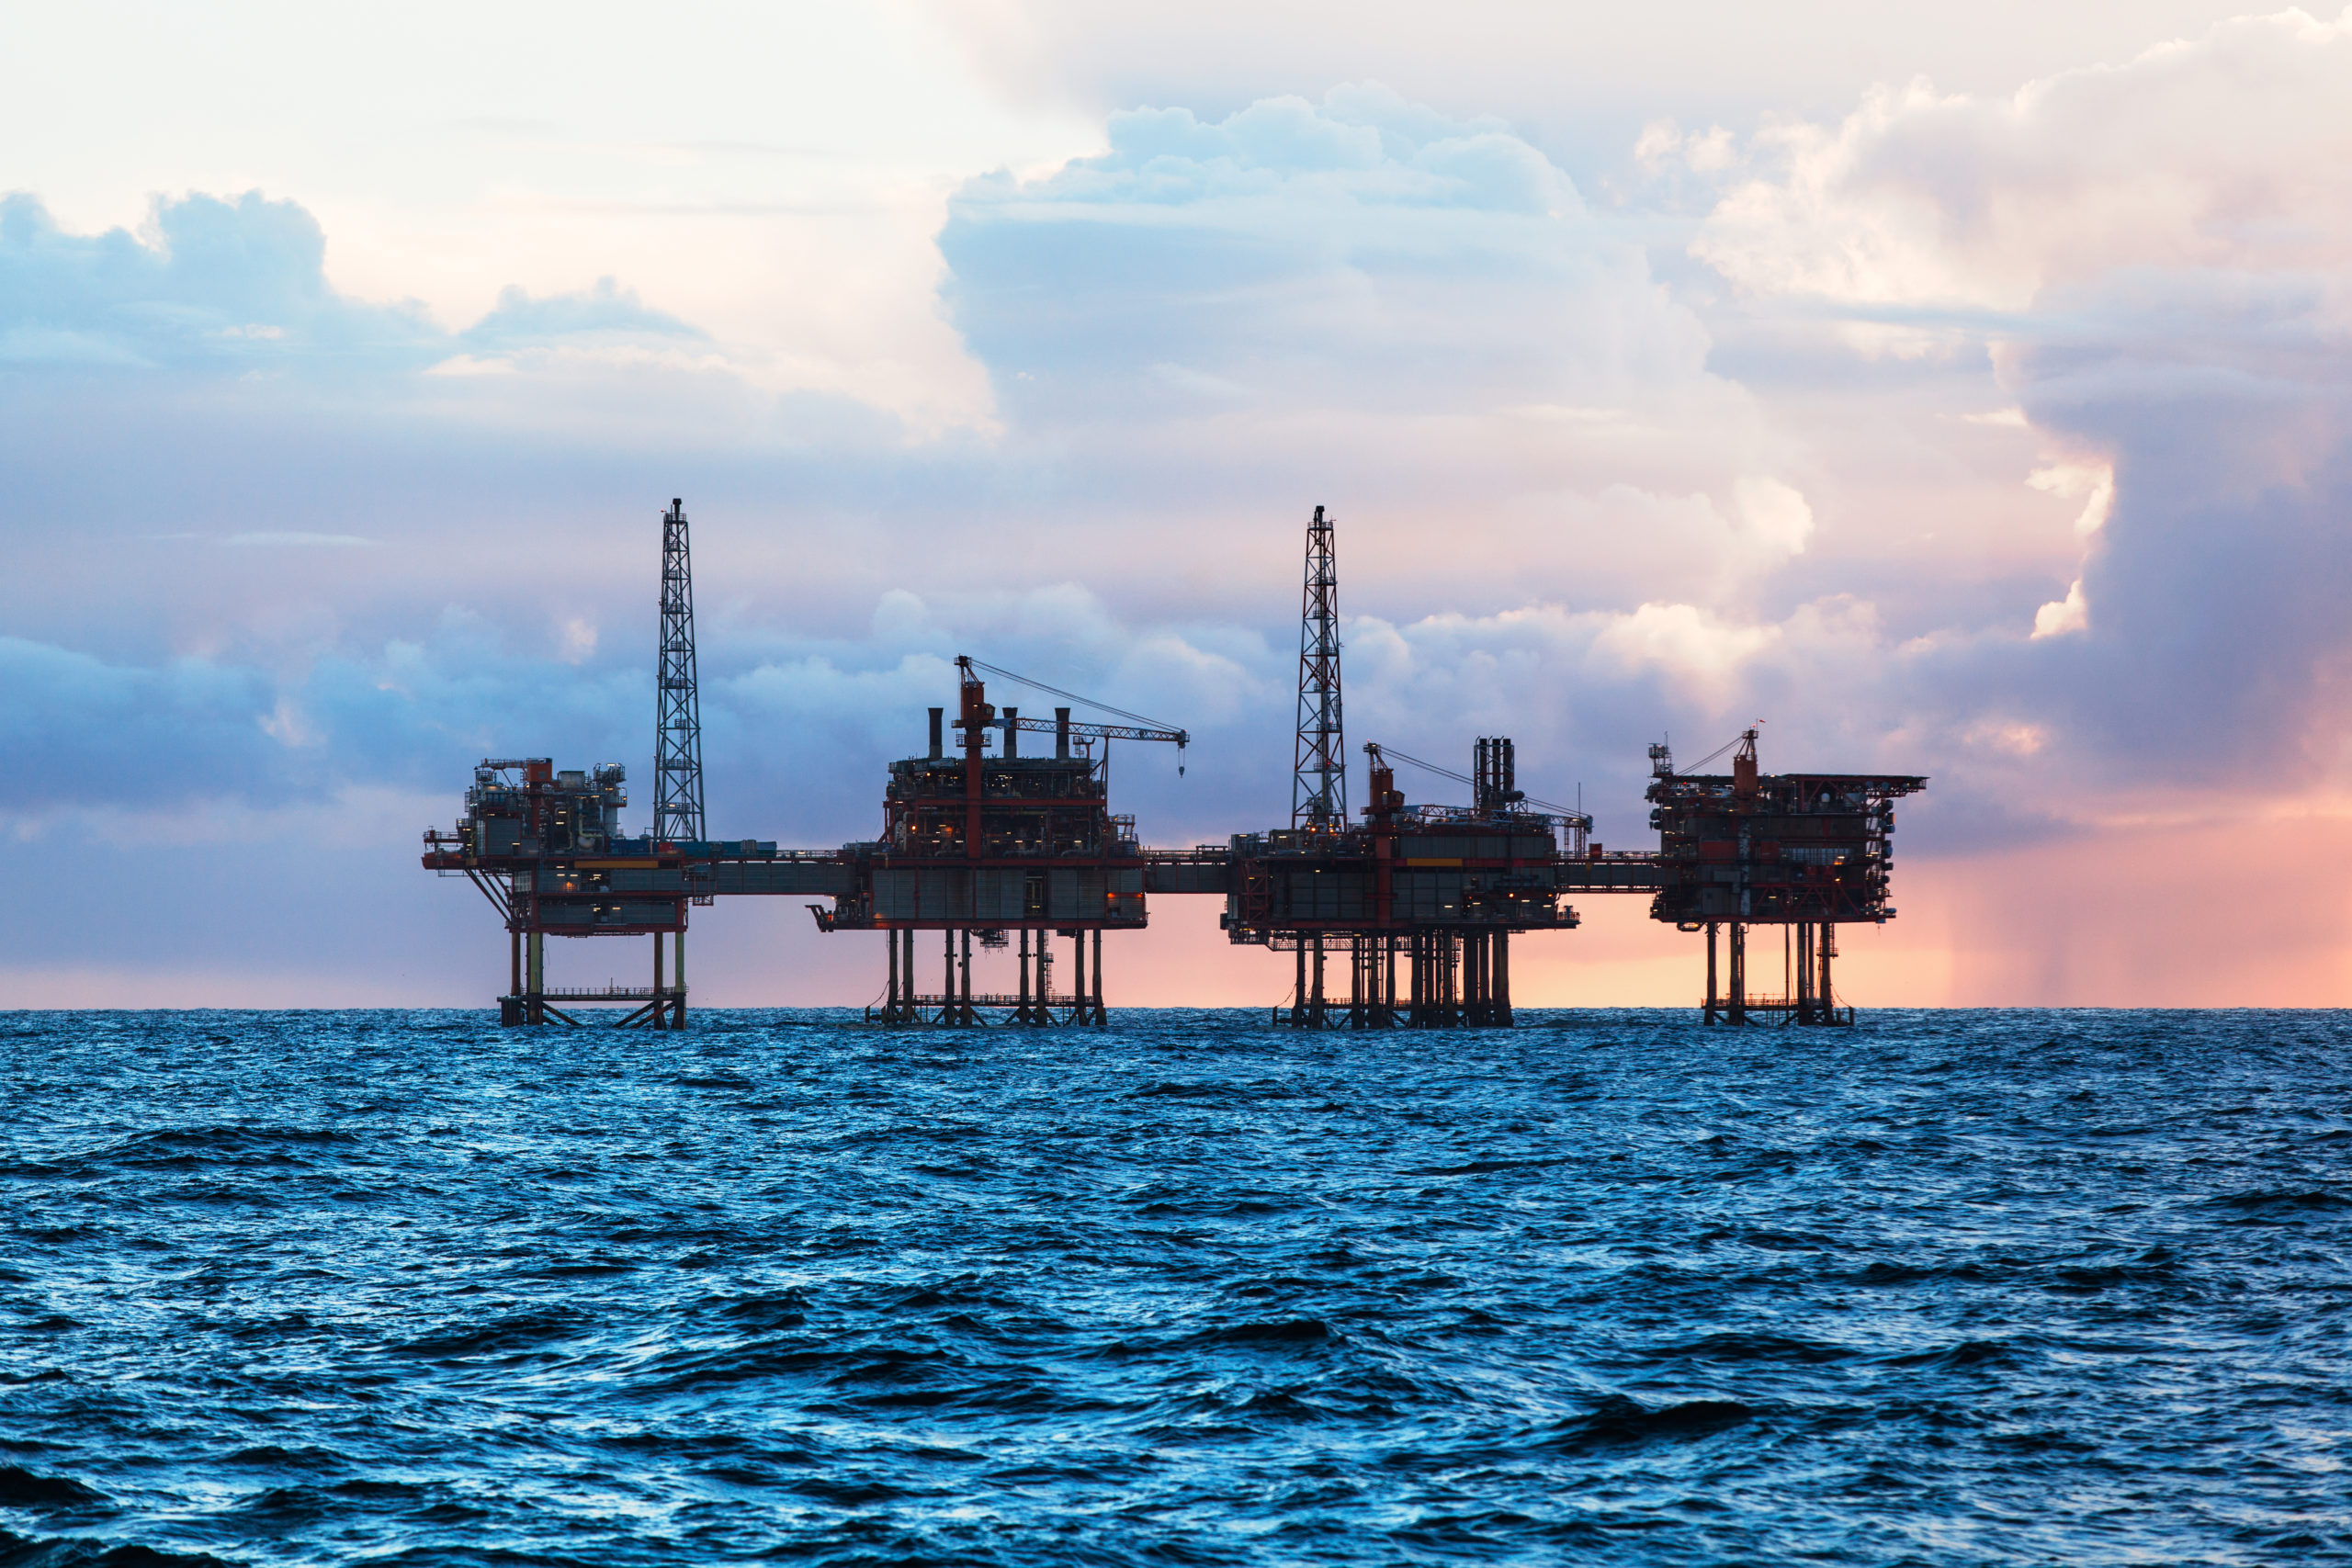 Texas Offshore Injury Lawyer | BSEE Faulted for Gulf of Mexico Pipeline Regulation